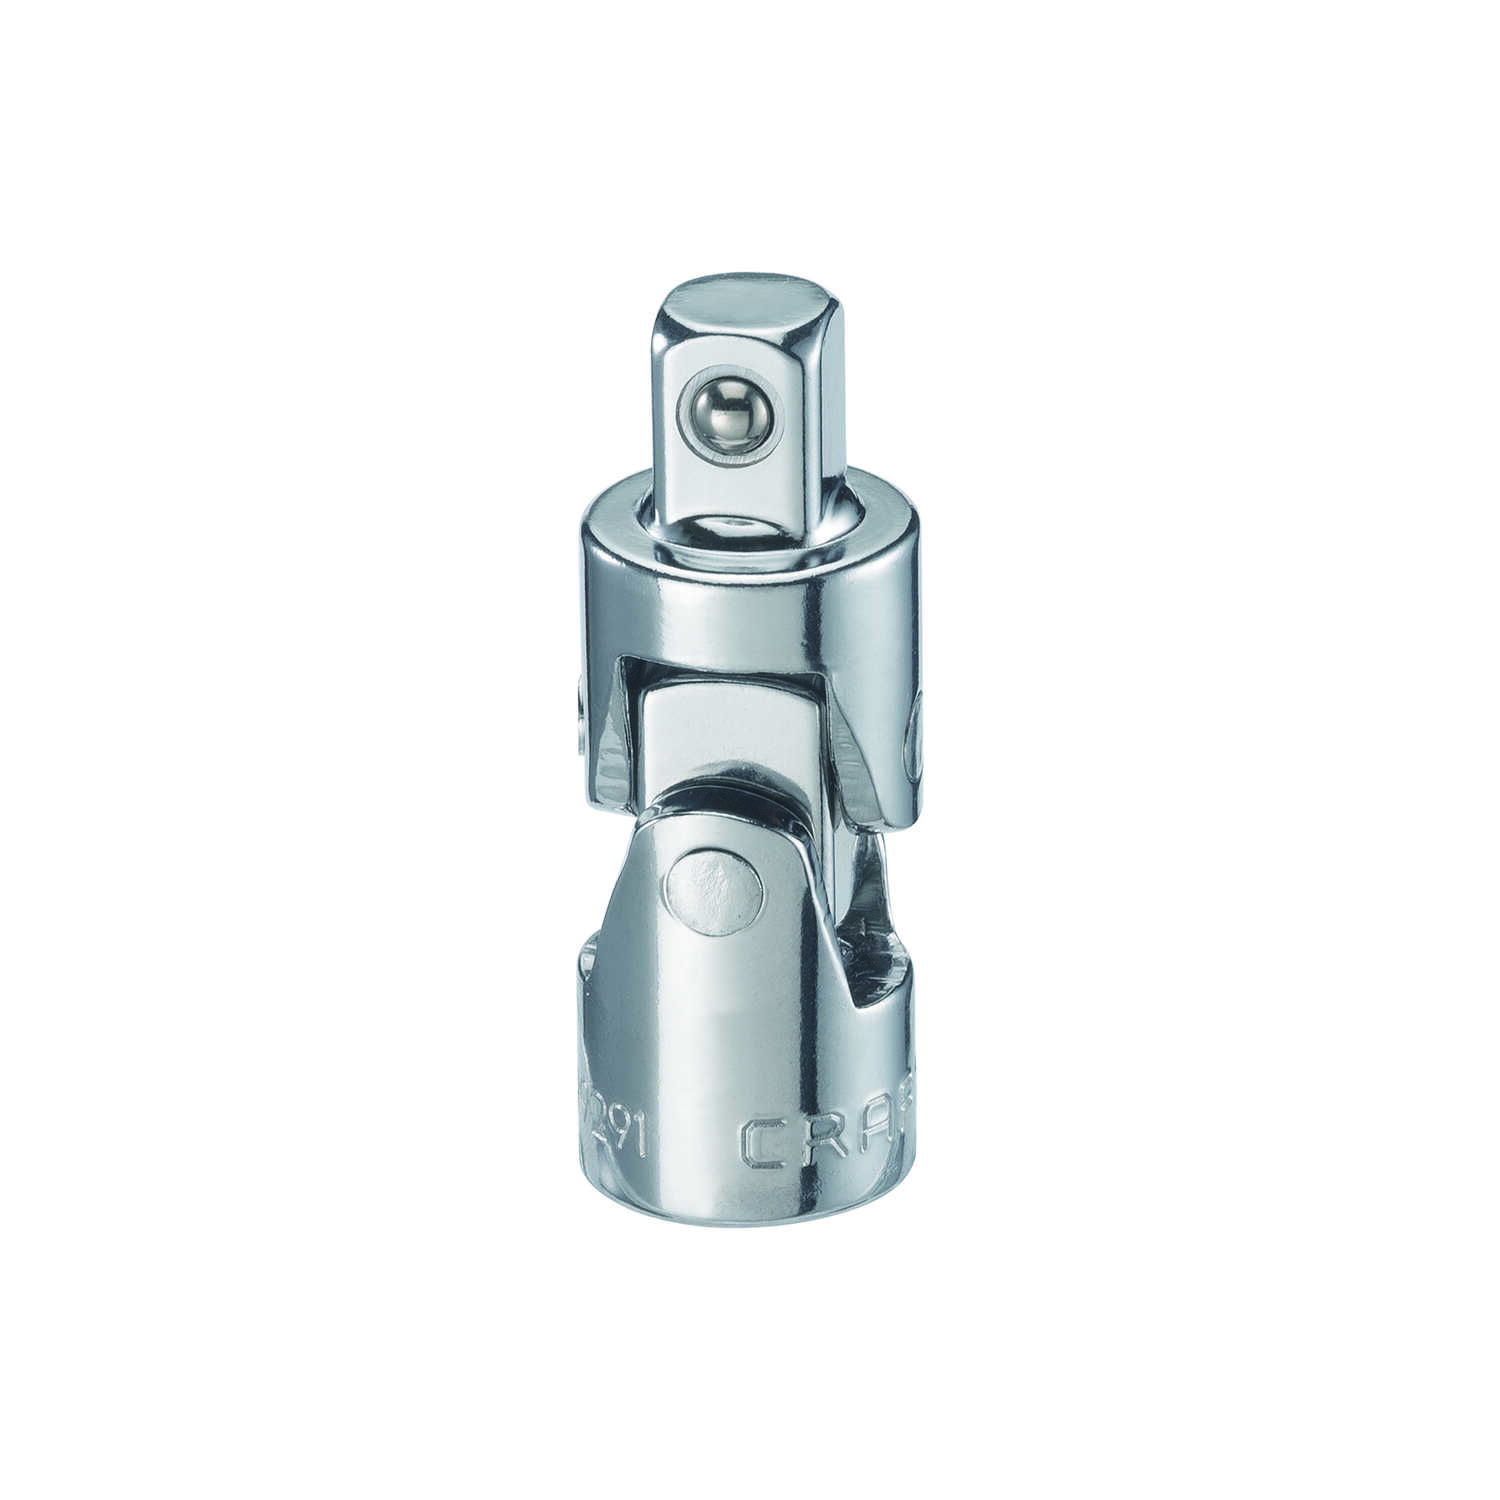 Craftsman  0.375 in. L x 3/8 in. Drive in.  Universal Joint  Alloy Steel  1 pc.